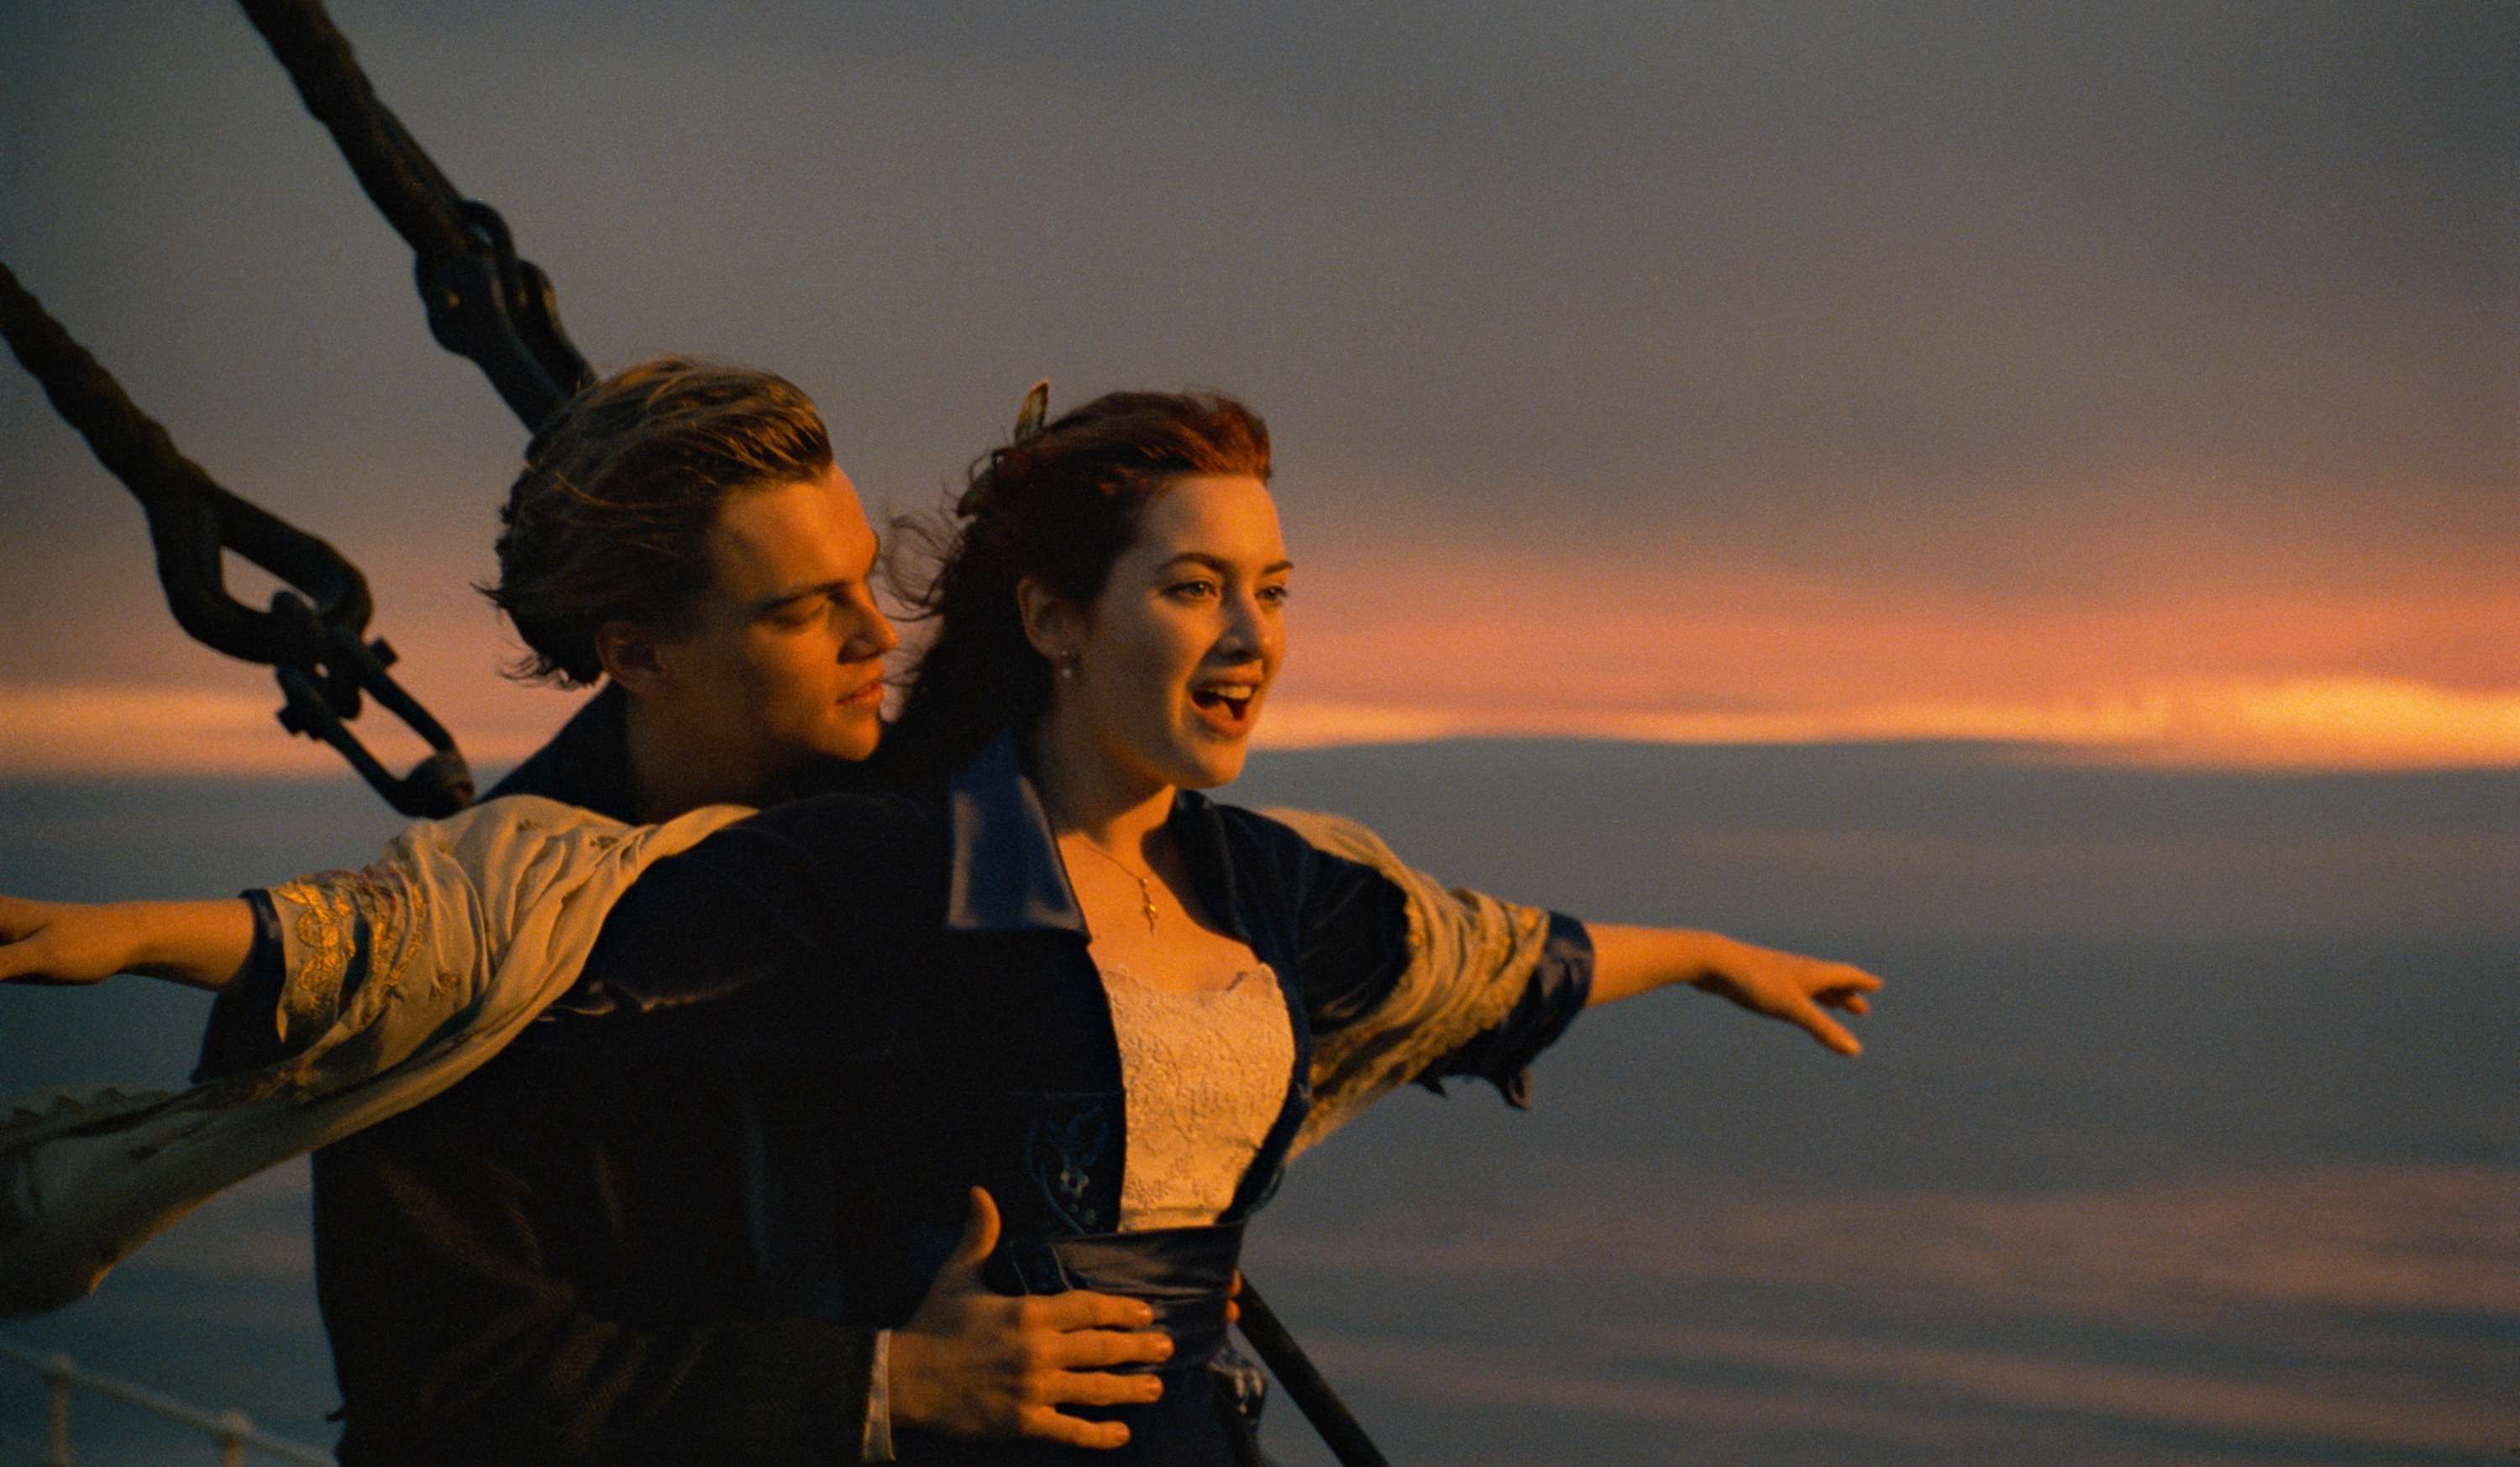 Leonardo DiCaprio holds Kate Winslet at the front of the Titanic with her arms outstretched in the film Titanic